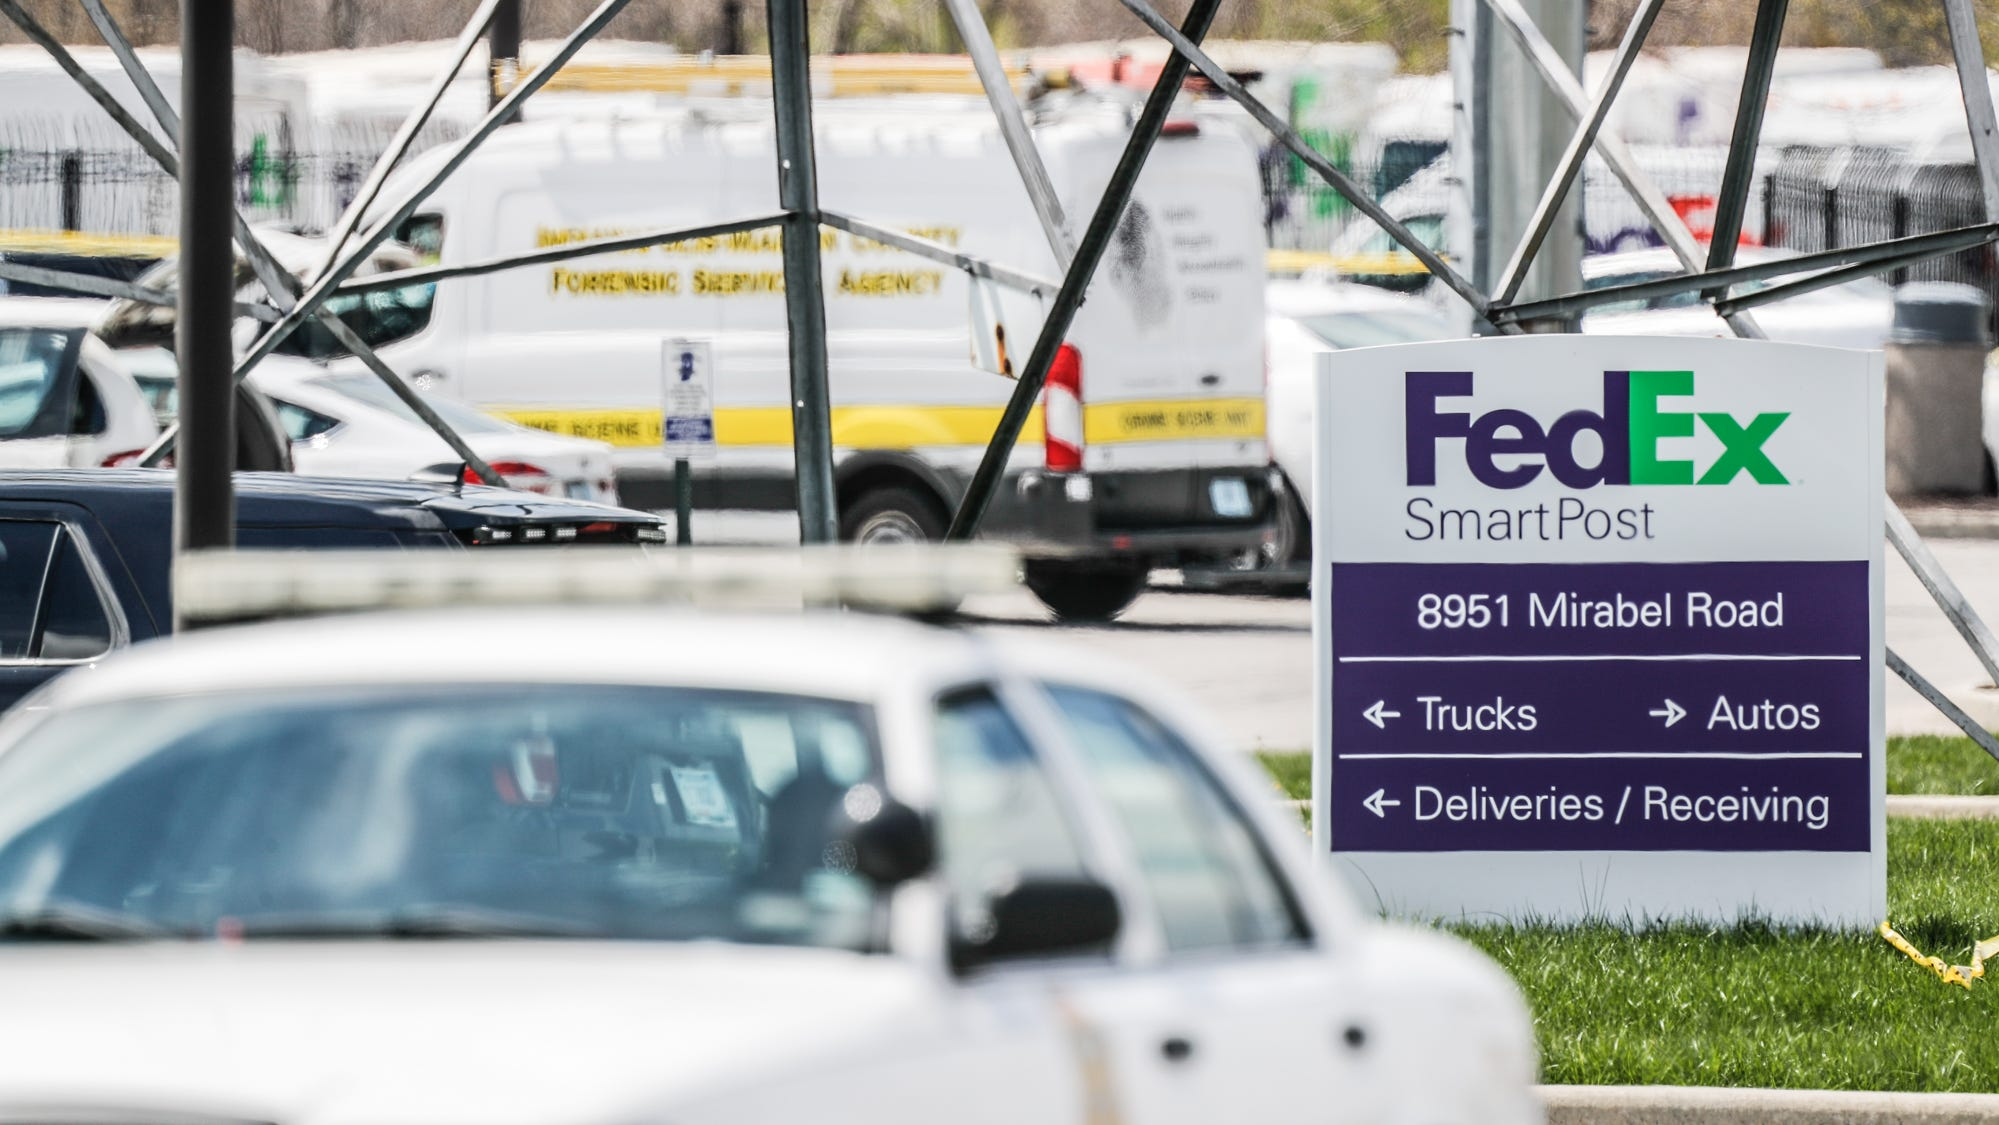 Sikh leaders respond to shooting at FedEx facility in Indianapolis